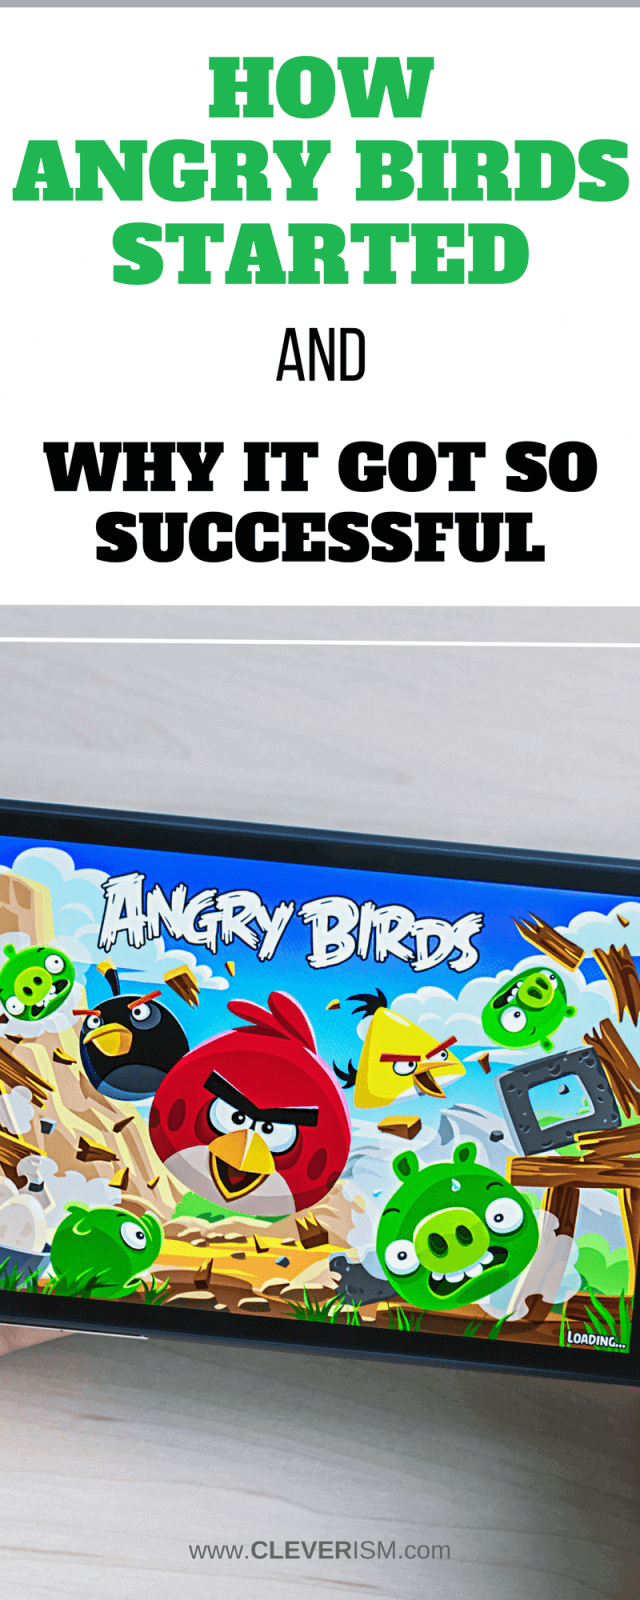 How Angry Birds Started and Why It Got So Successful